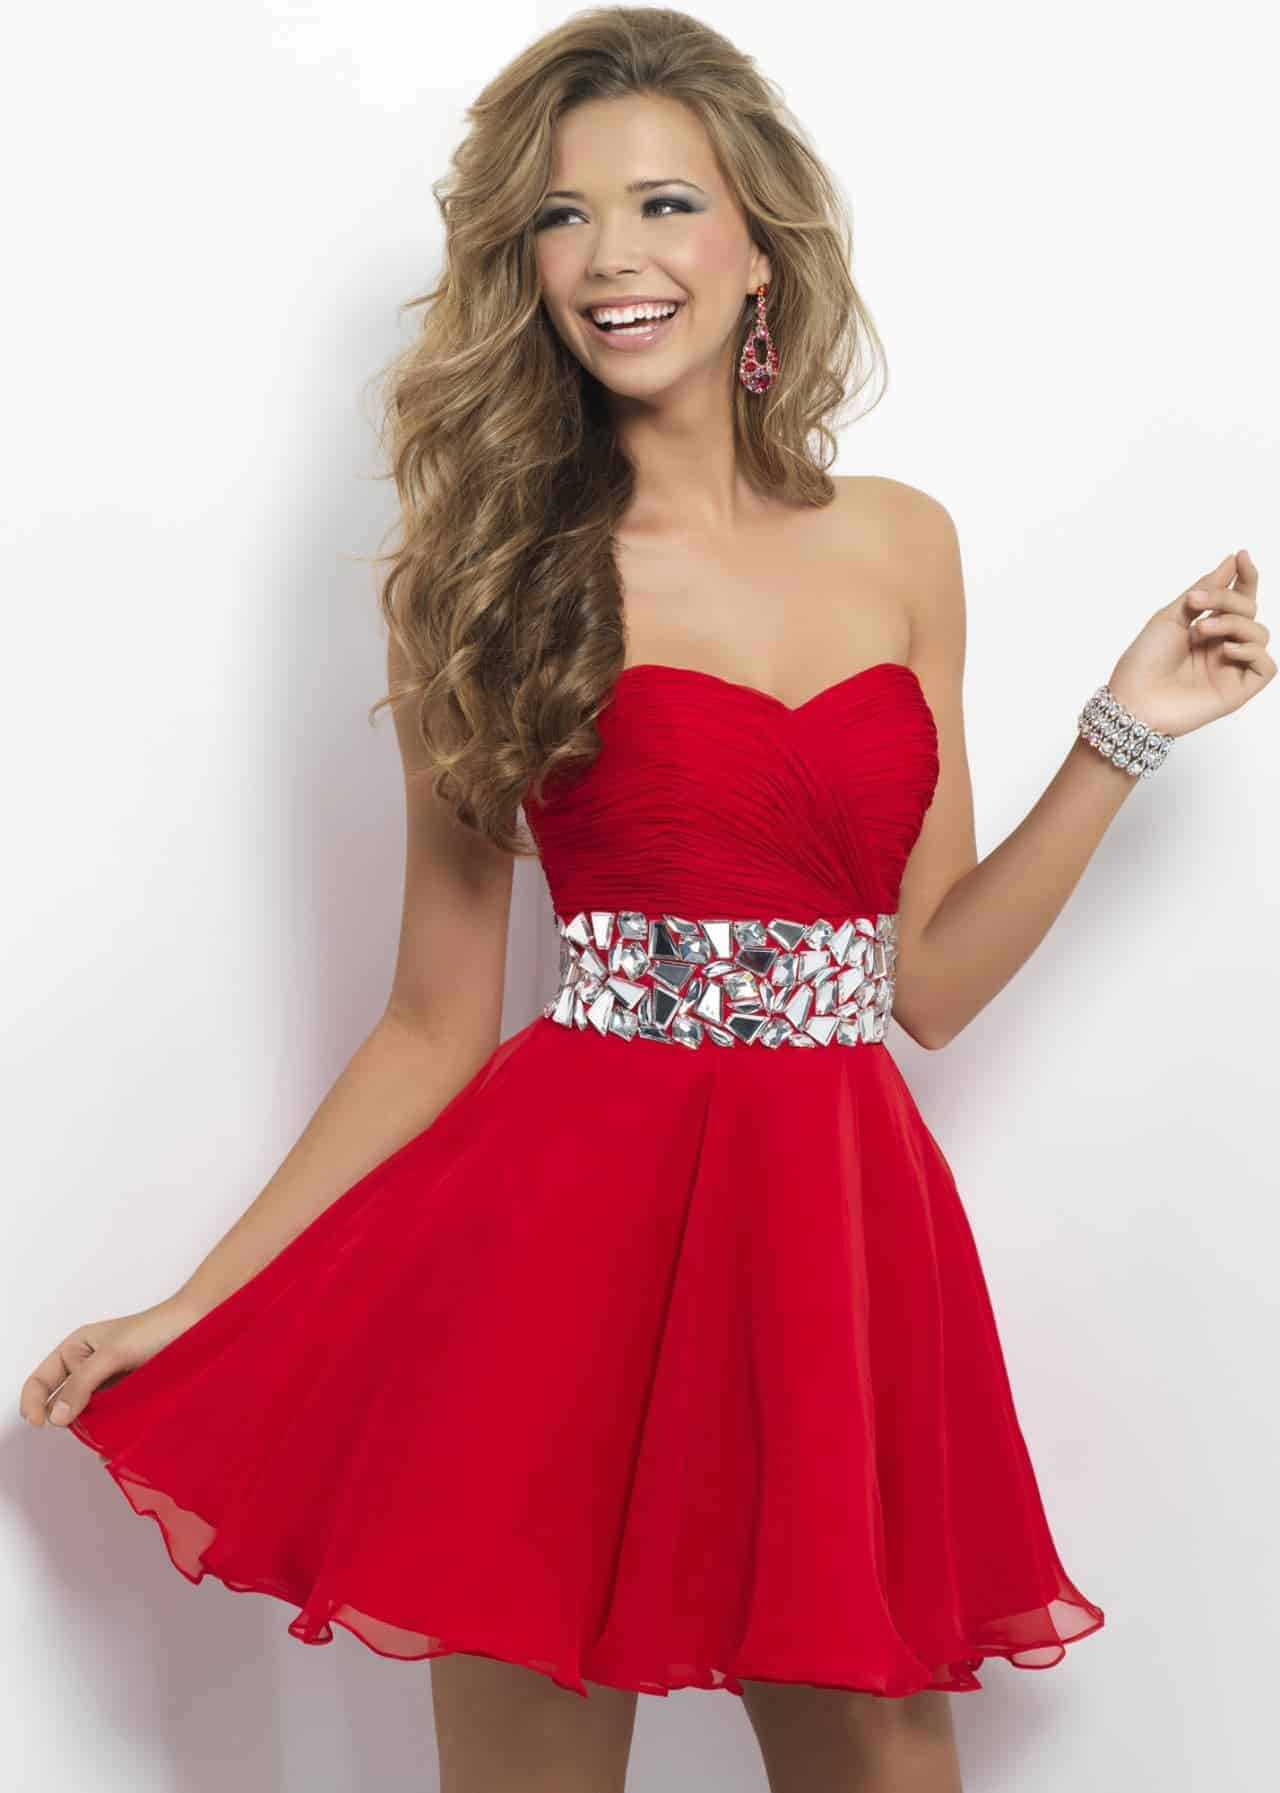 Fashion Prom Dresses 2015 Women Styles Hairstyles Makeup